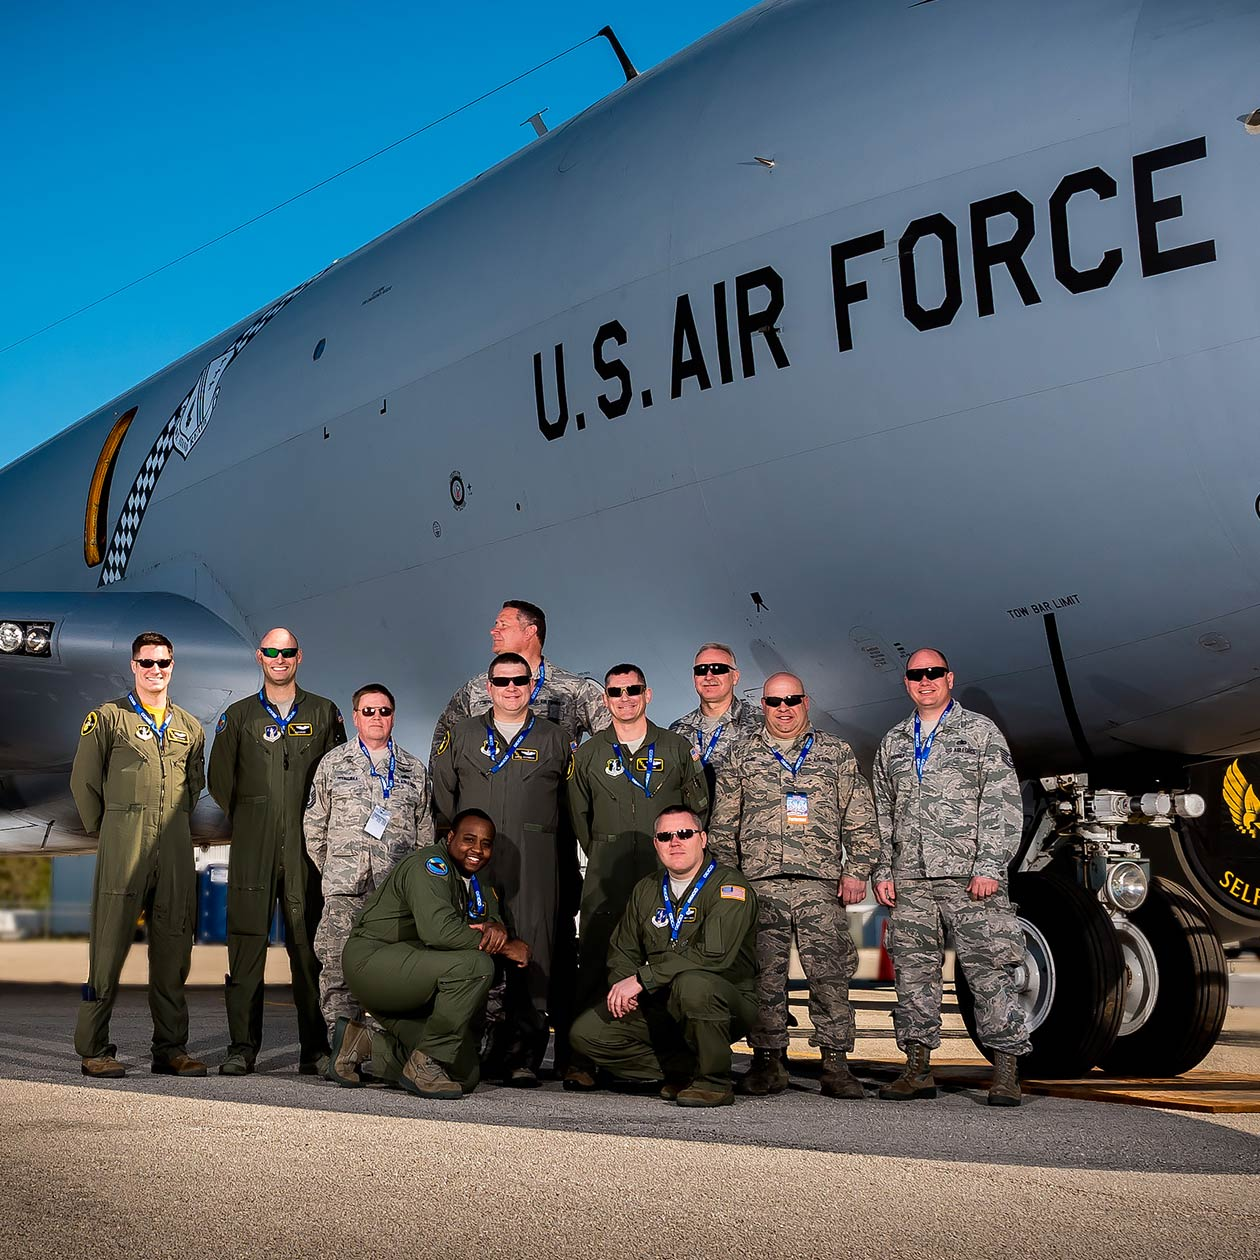 U.S. Air Force Tanker Crew